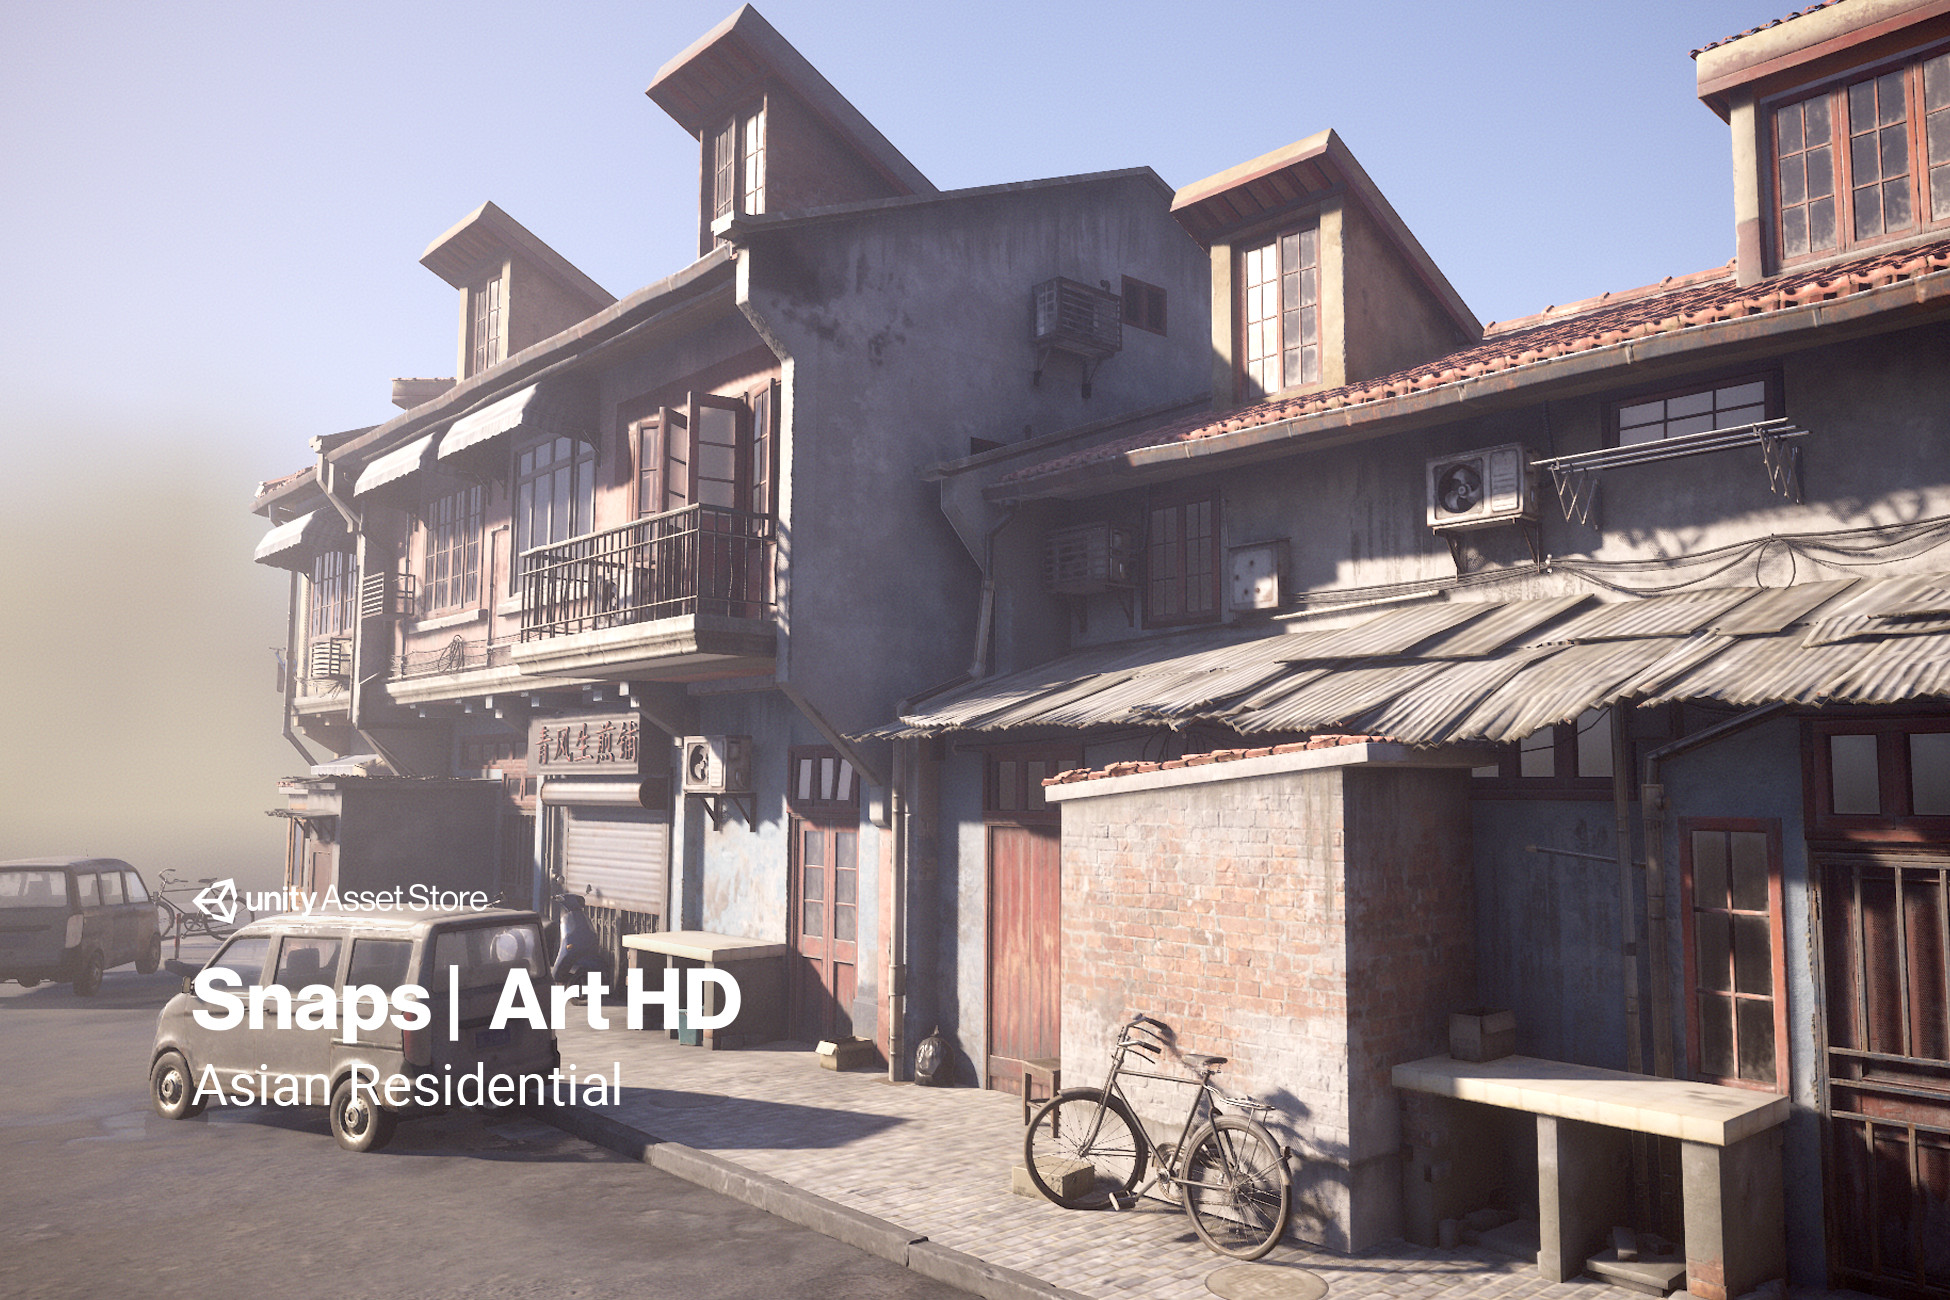 Snaps Art HD | Asian Residential